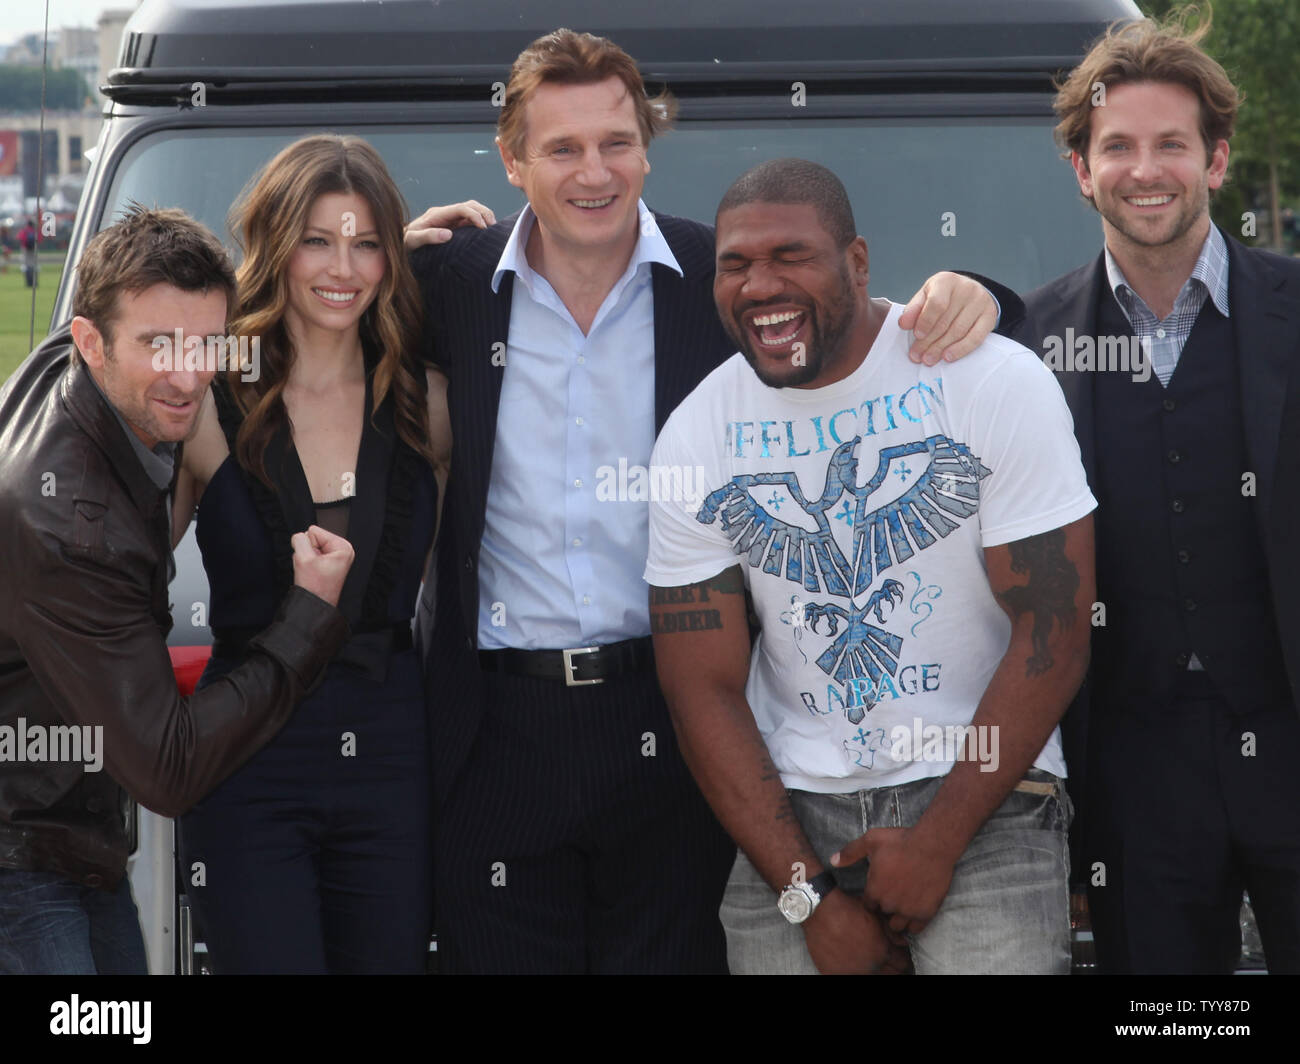 From L To R Sharlto Copley Jessica Biel Liam Neeson Quinton Rampage Jackson And Bradley Cooper From The Film The A Team Arrive On The Champs De Mars In Front Of The Eiffel